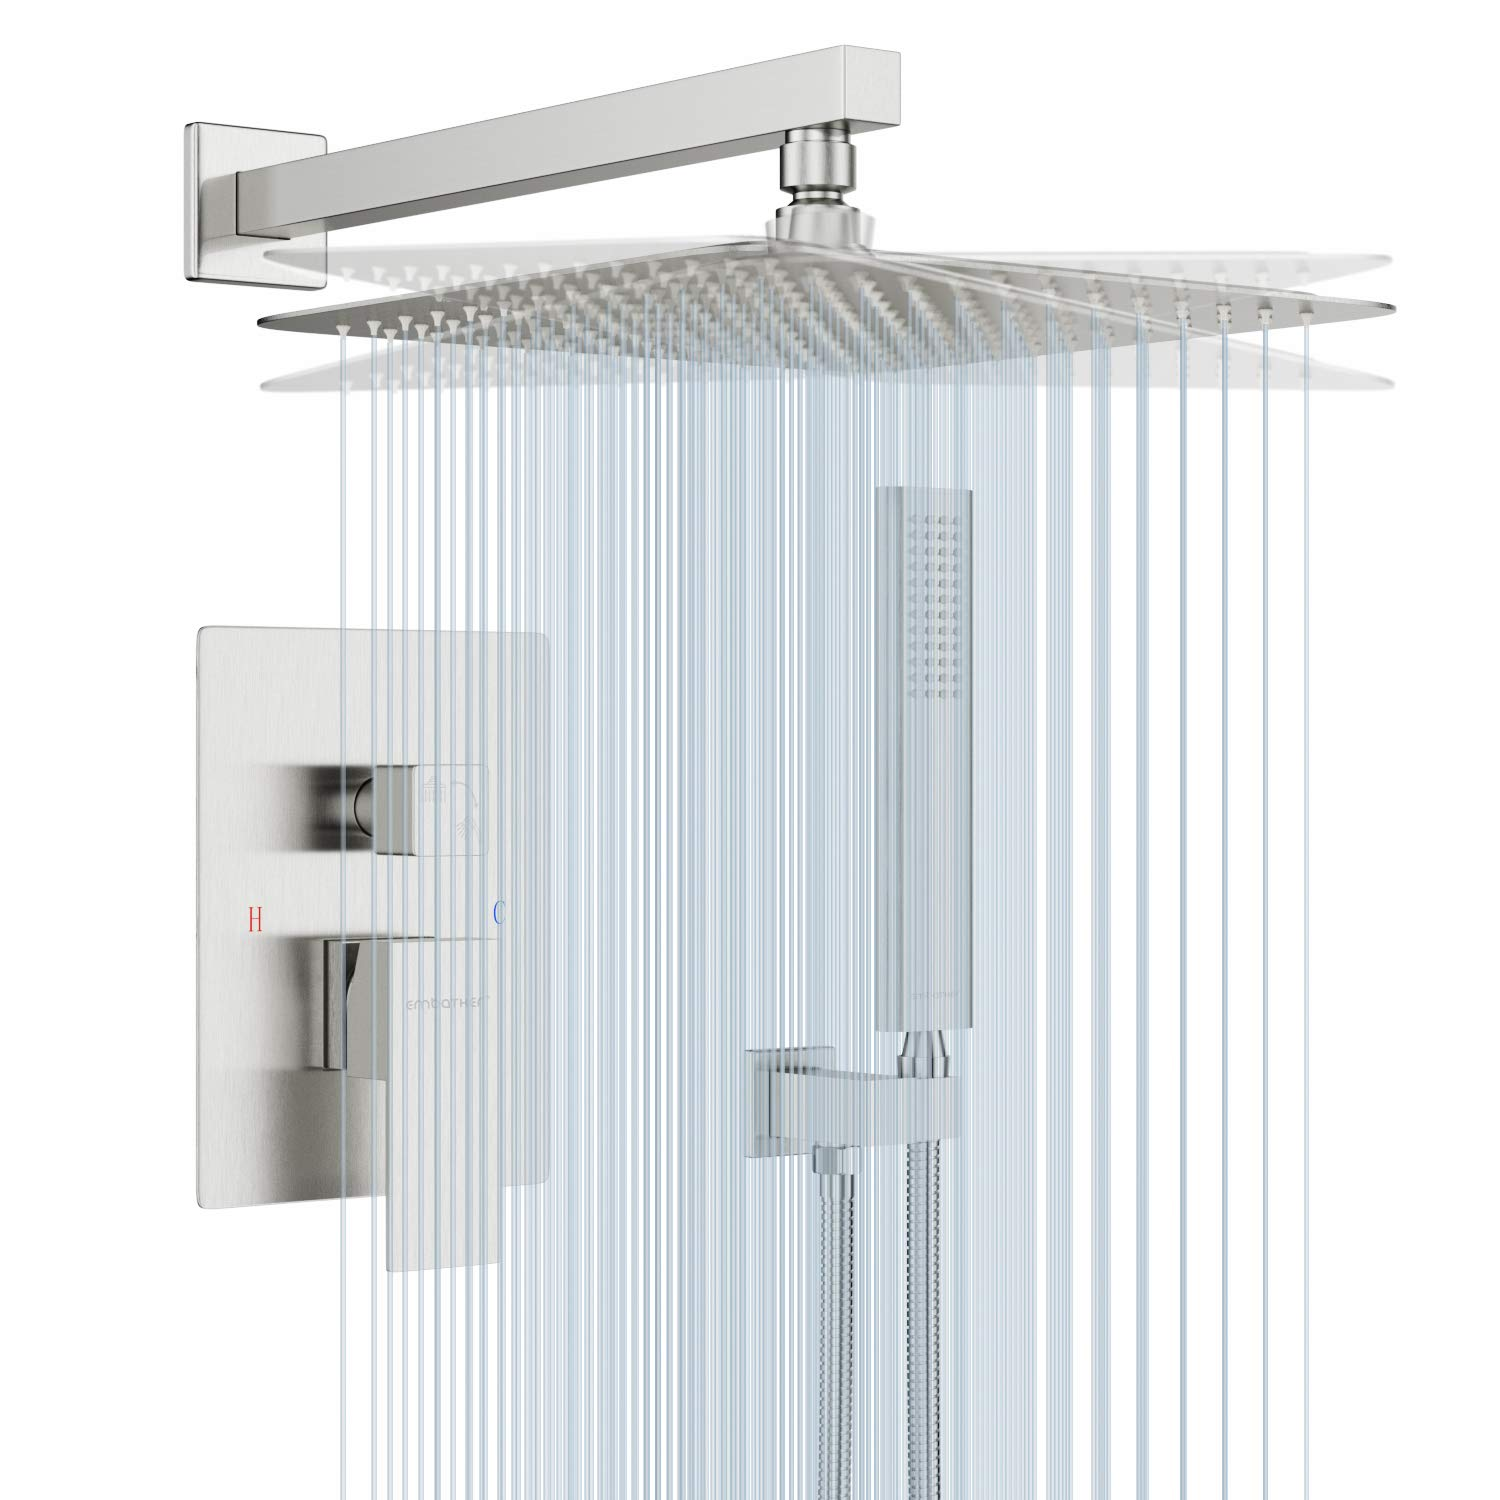 EMBATHER Shower System with Antirust Coating- Brushed Nickel Shower Faucet Set for Bathroom- 12 inches Square Rain Shower Head and Handheld- Easy Installation- Eco-Friendly